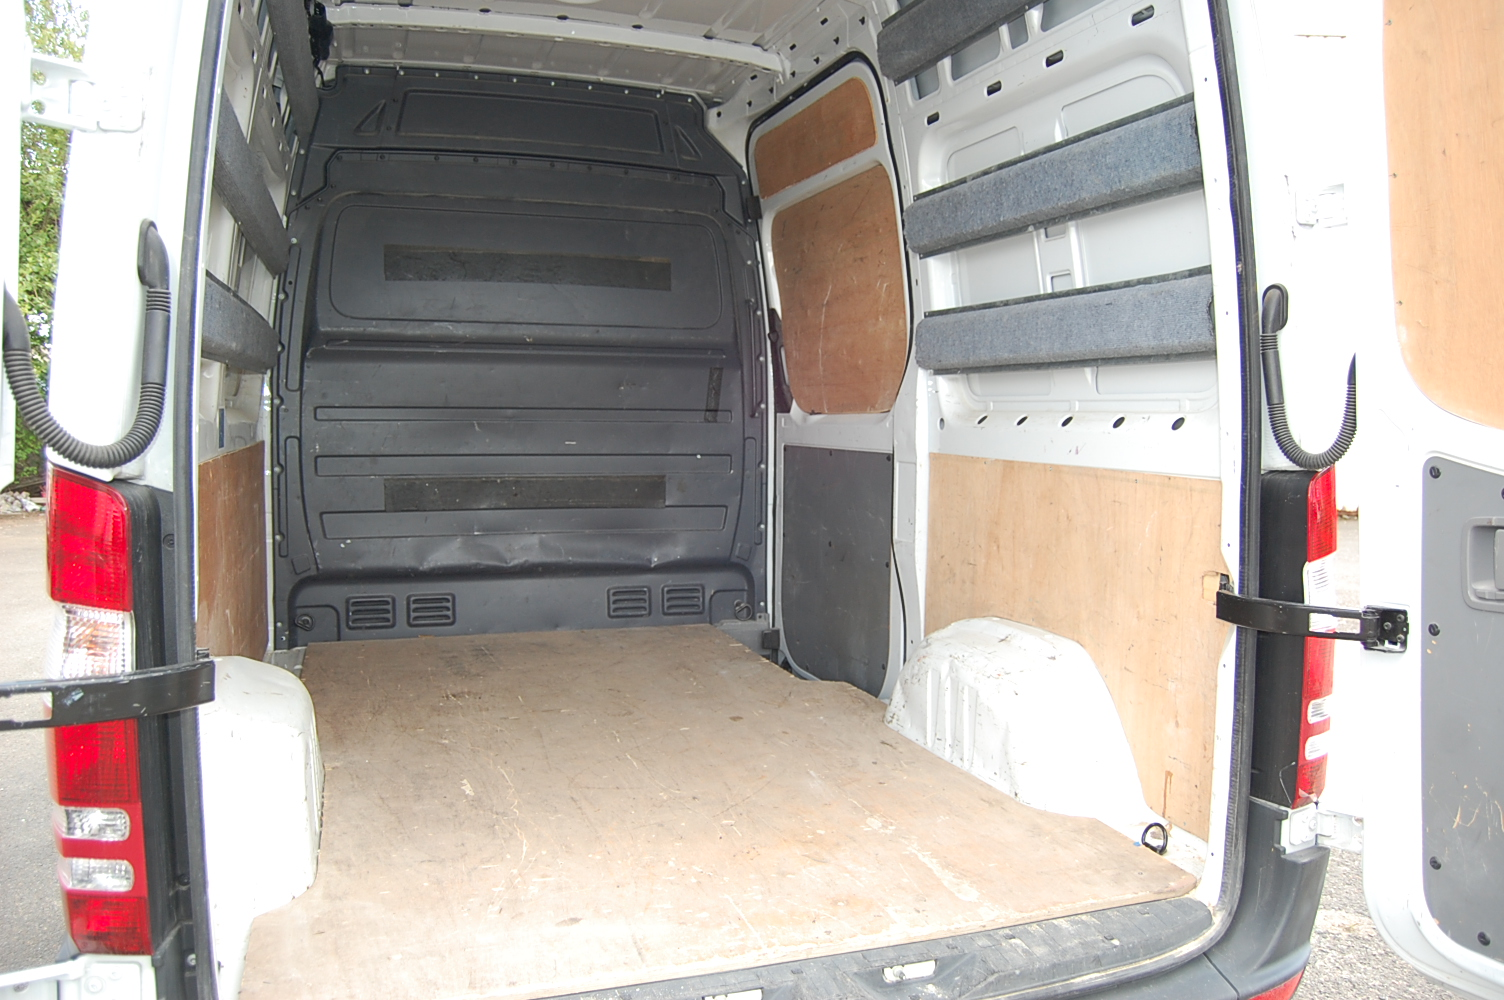 iveco daily 12m3 dimensions. Black Bedroom Furniture Sets. Home Design Ideas